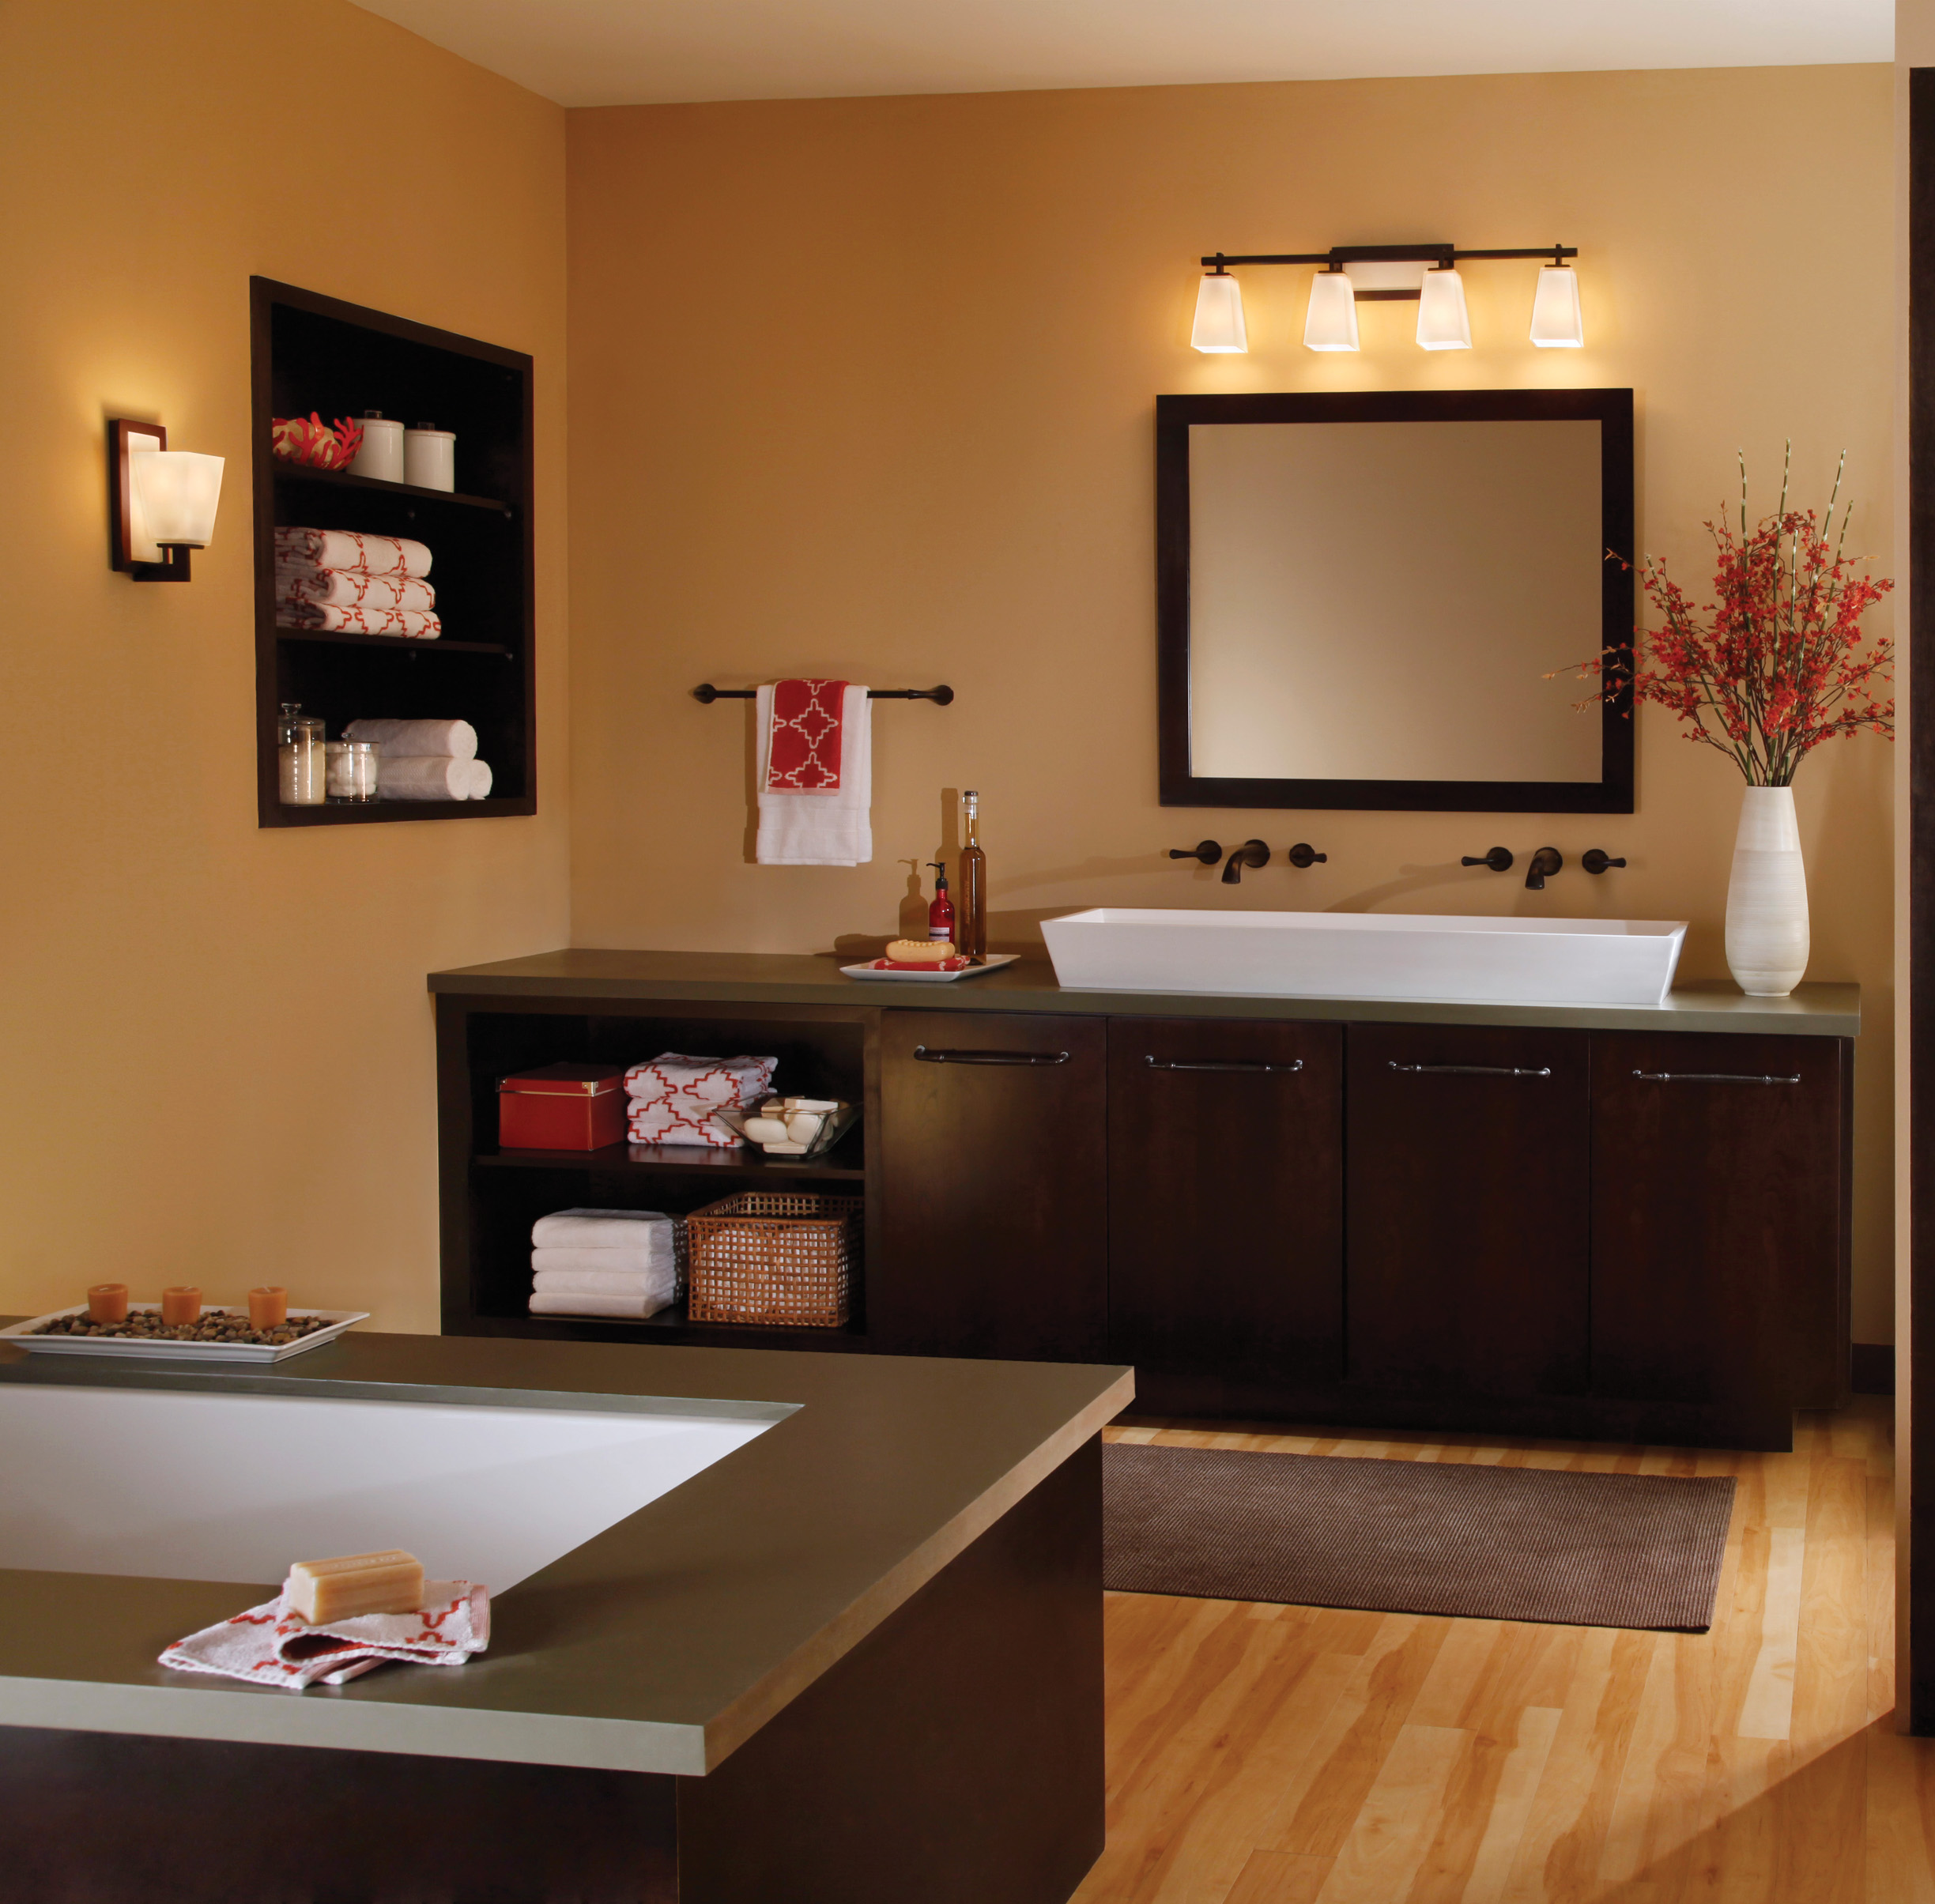 Bathroom Wall Lights Above Mirror Lighting Your Dream Bathroom Welcome To Lighting Inc Online